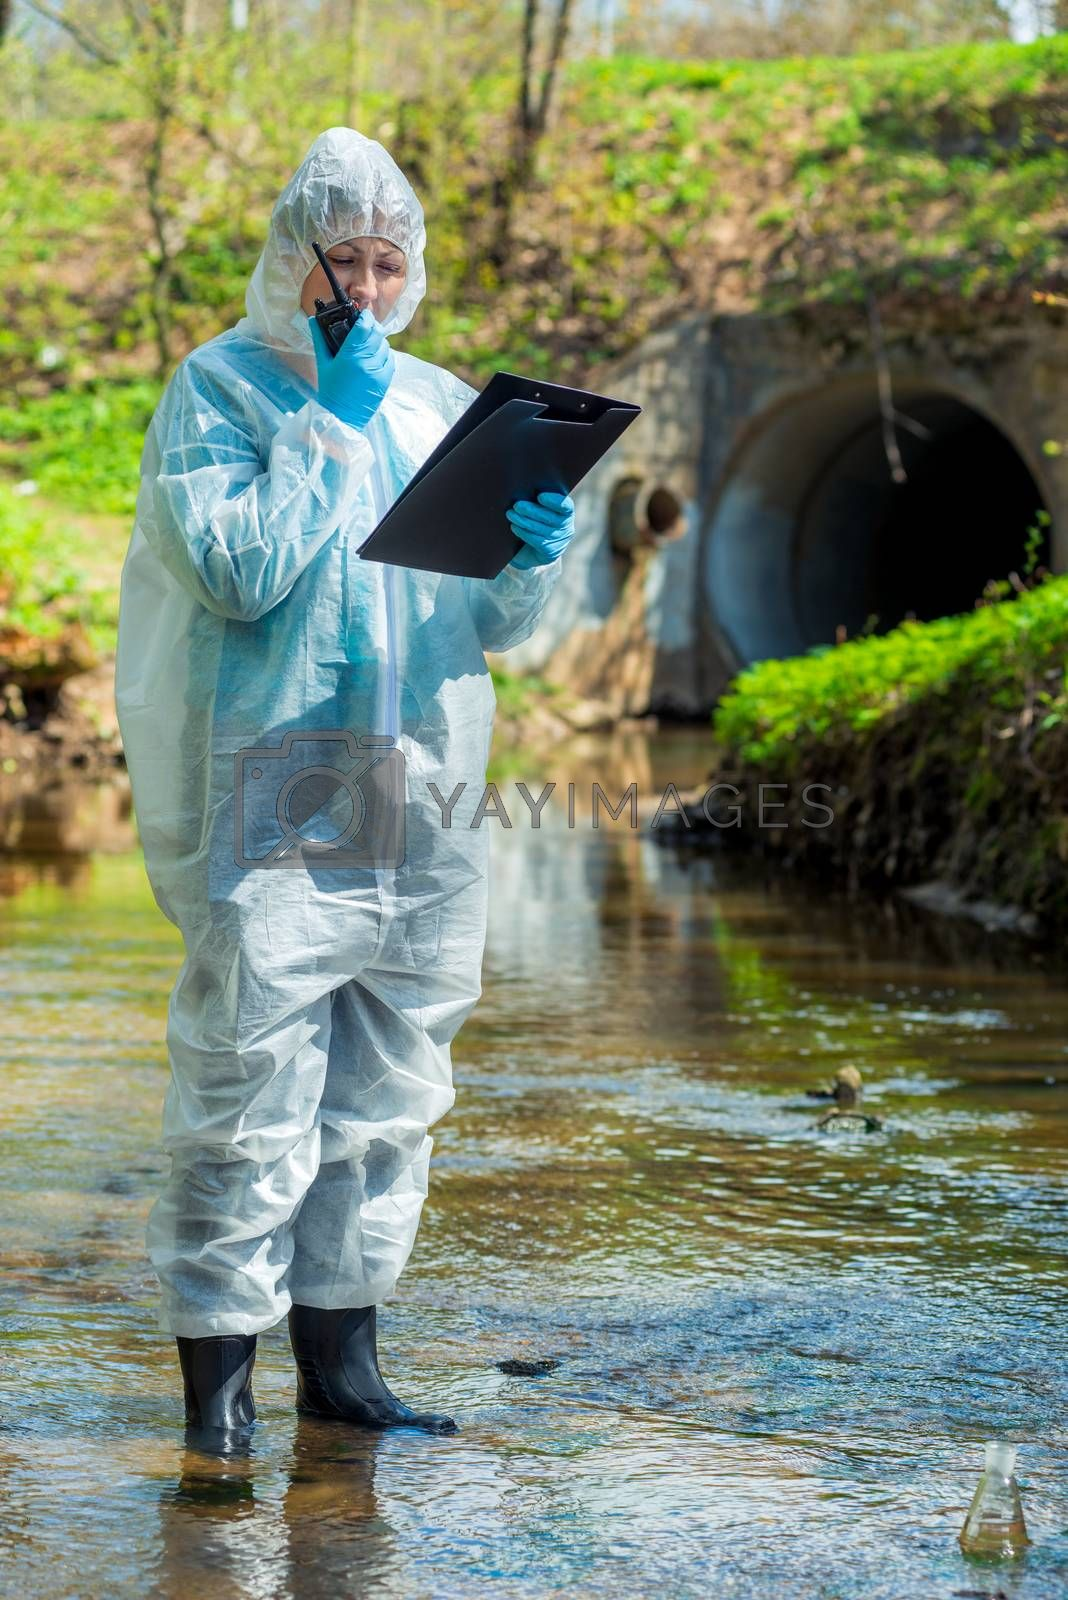 environmental scientist with a walkie-talkie and a notebook on the background of a sewer pipe